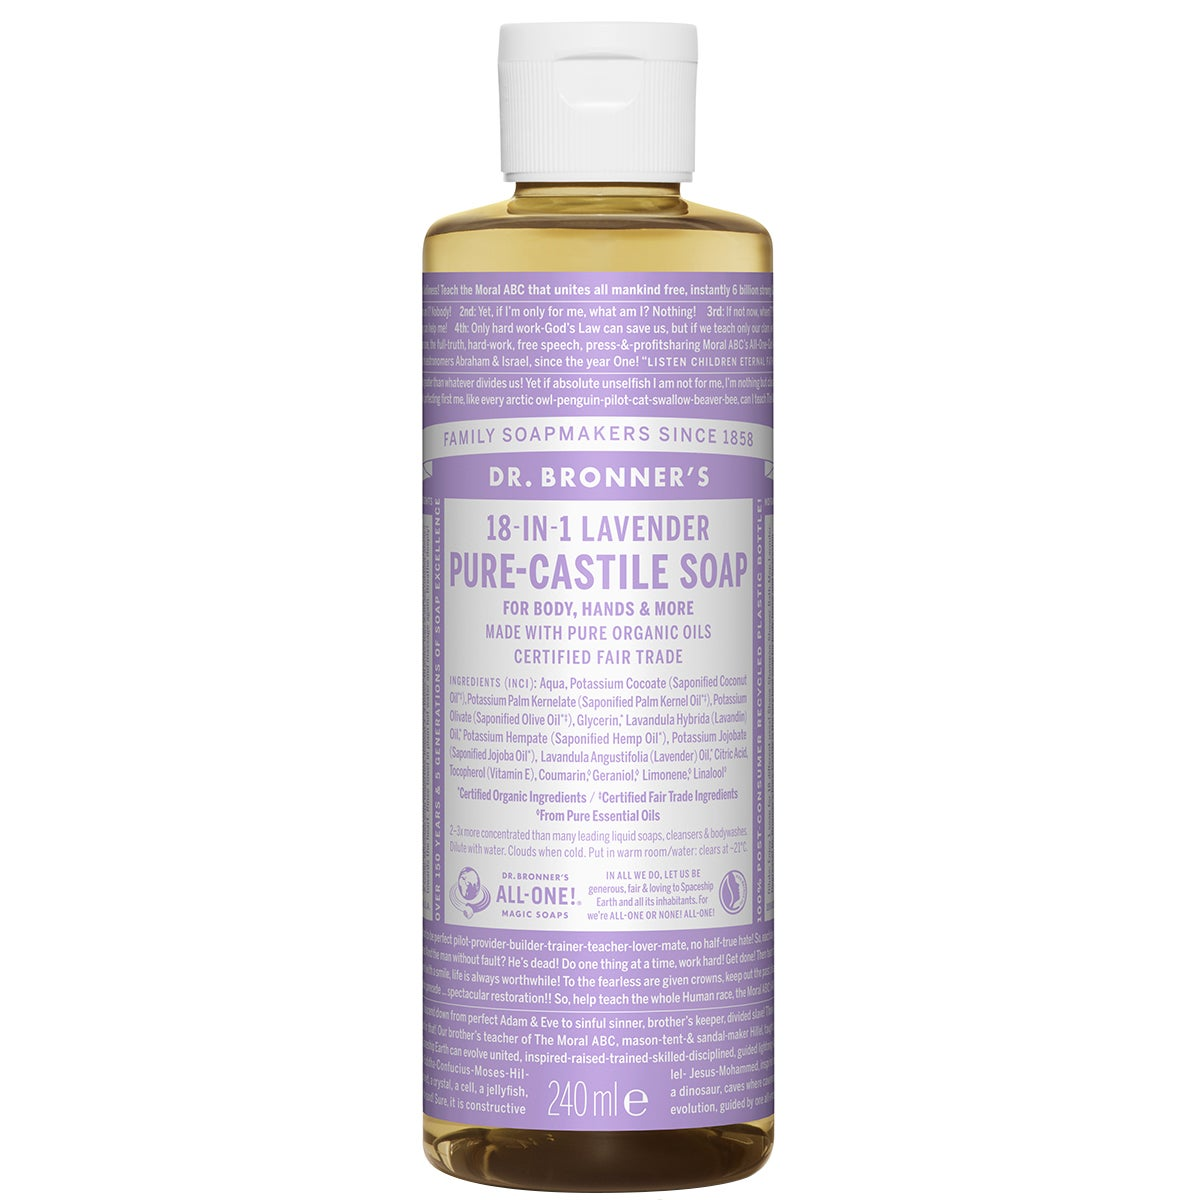 Dr. Bronner's Magic Soaps Lavender